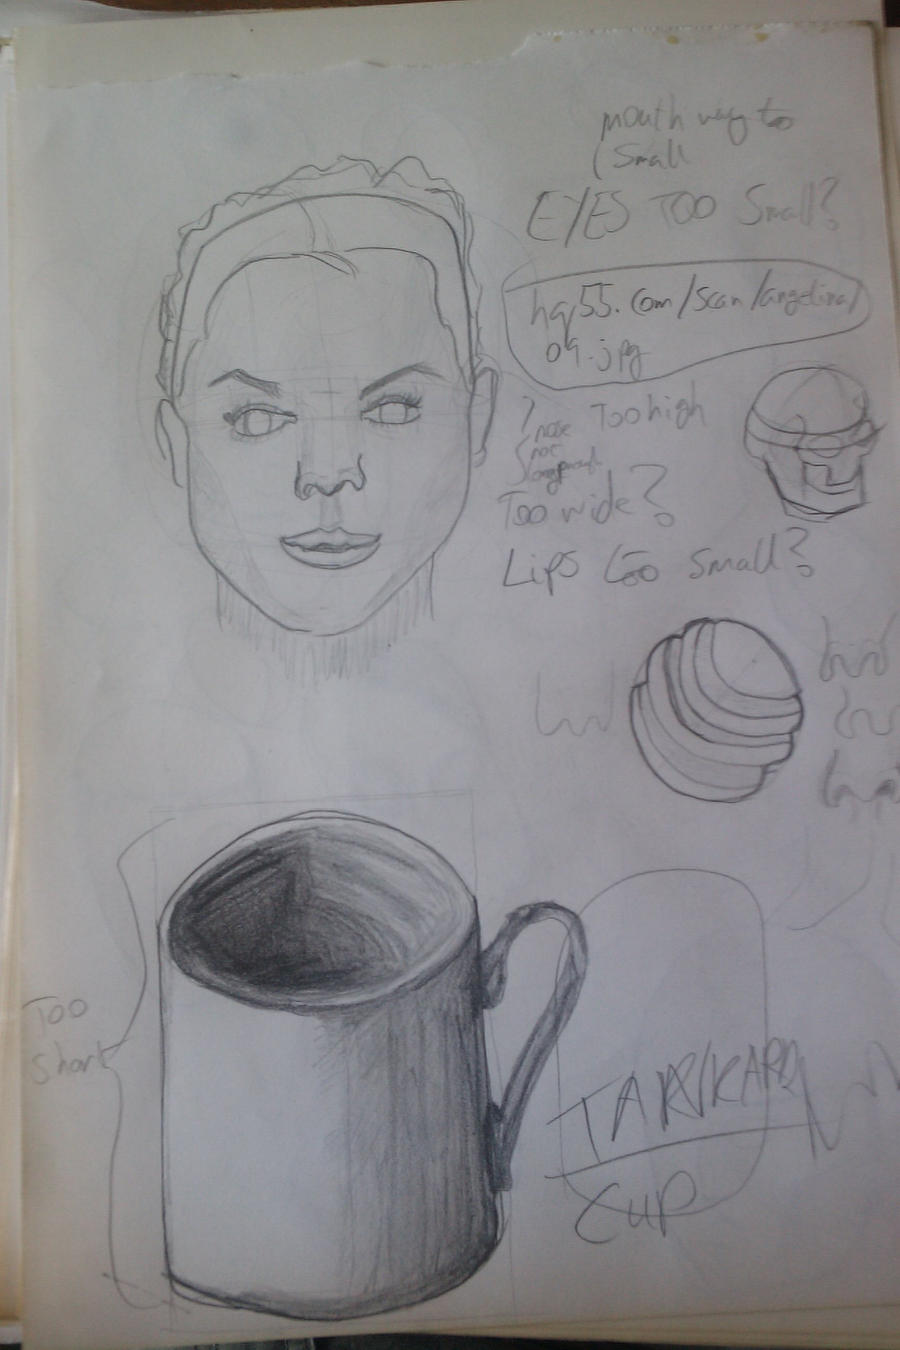 mug_and_face_by_chidona-d3k4rcc.jpg